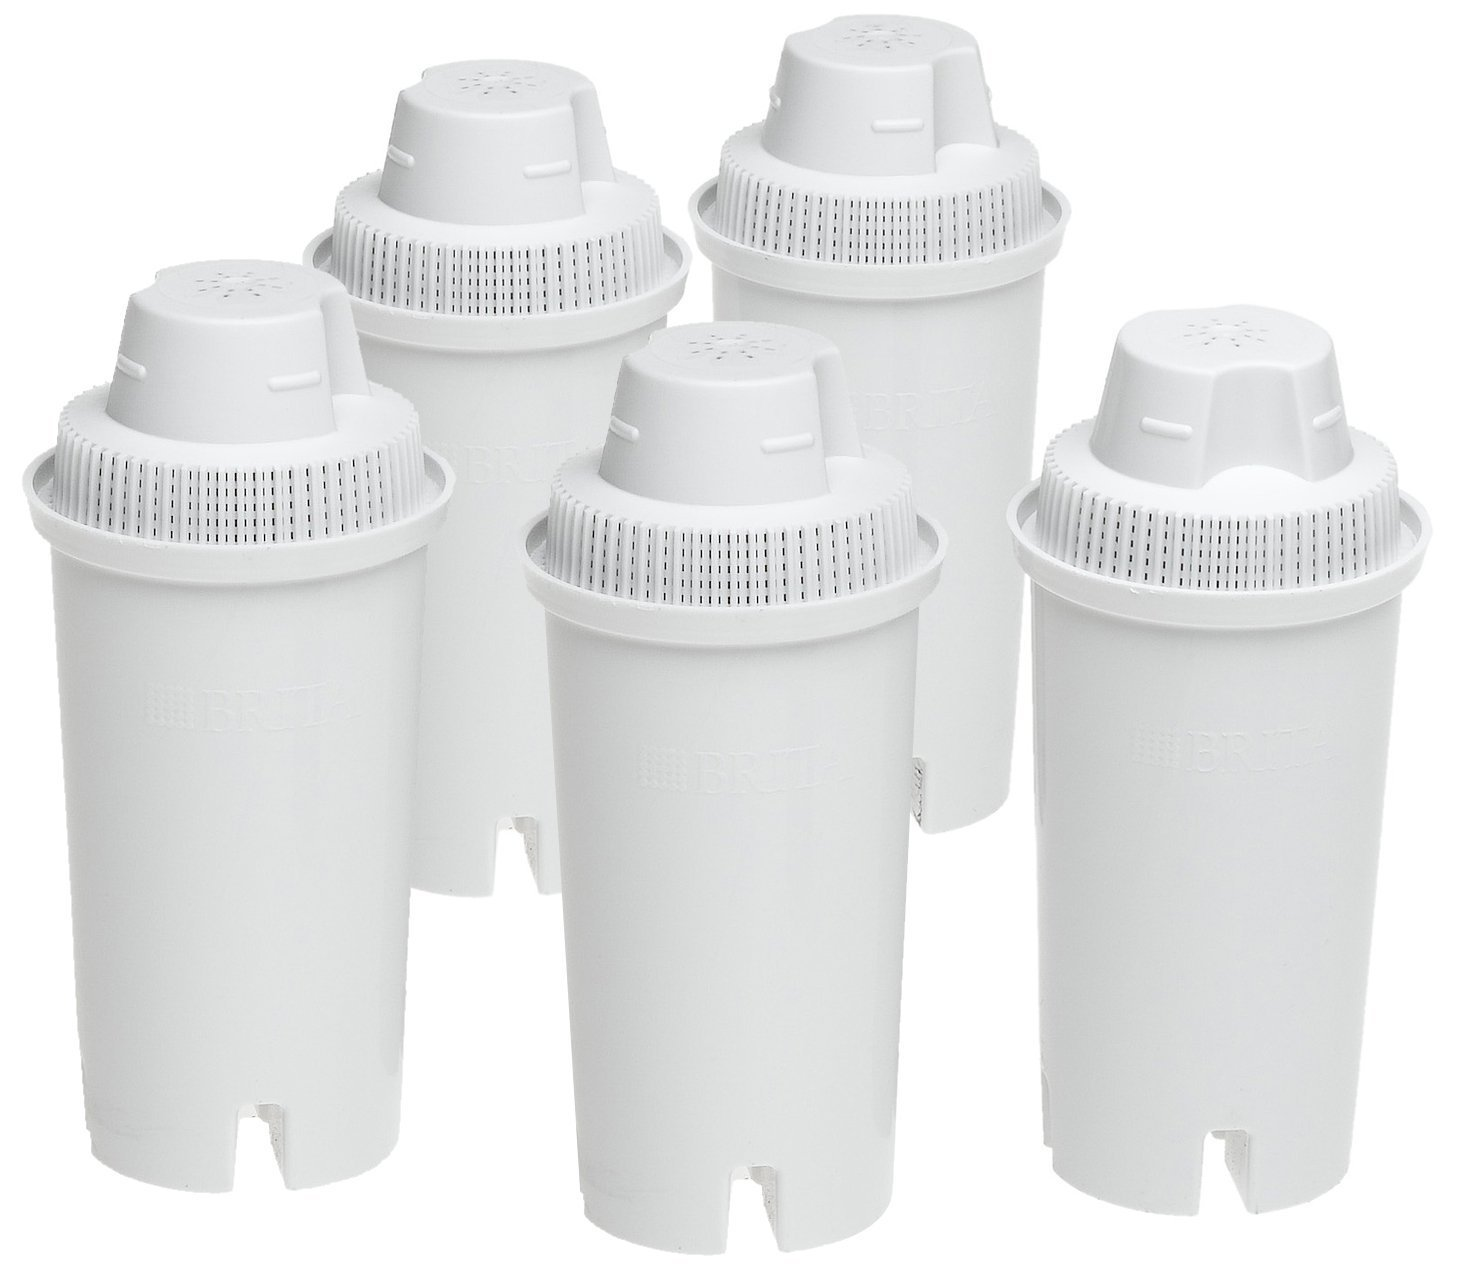 Brita Standard Replacement Filters for Pitchers and Dispensers - BPA Free - 5 Count by Brita (Image #2)